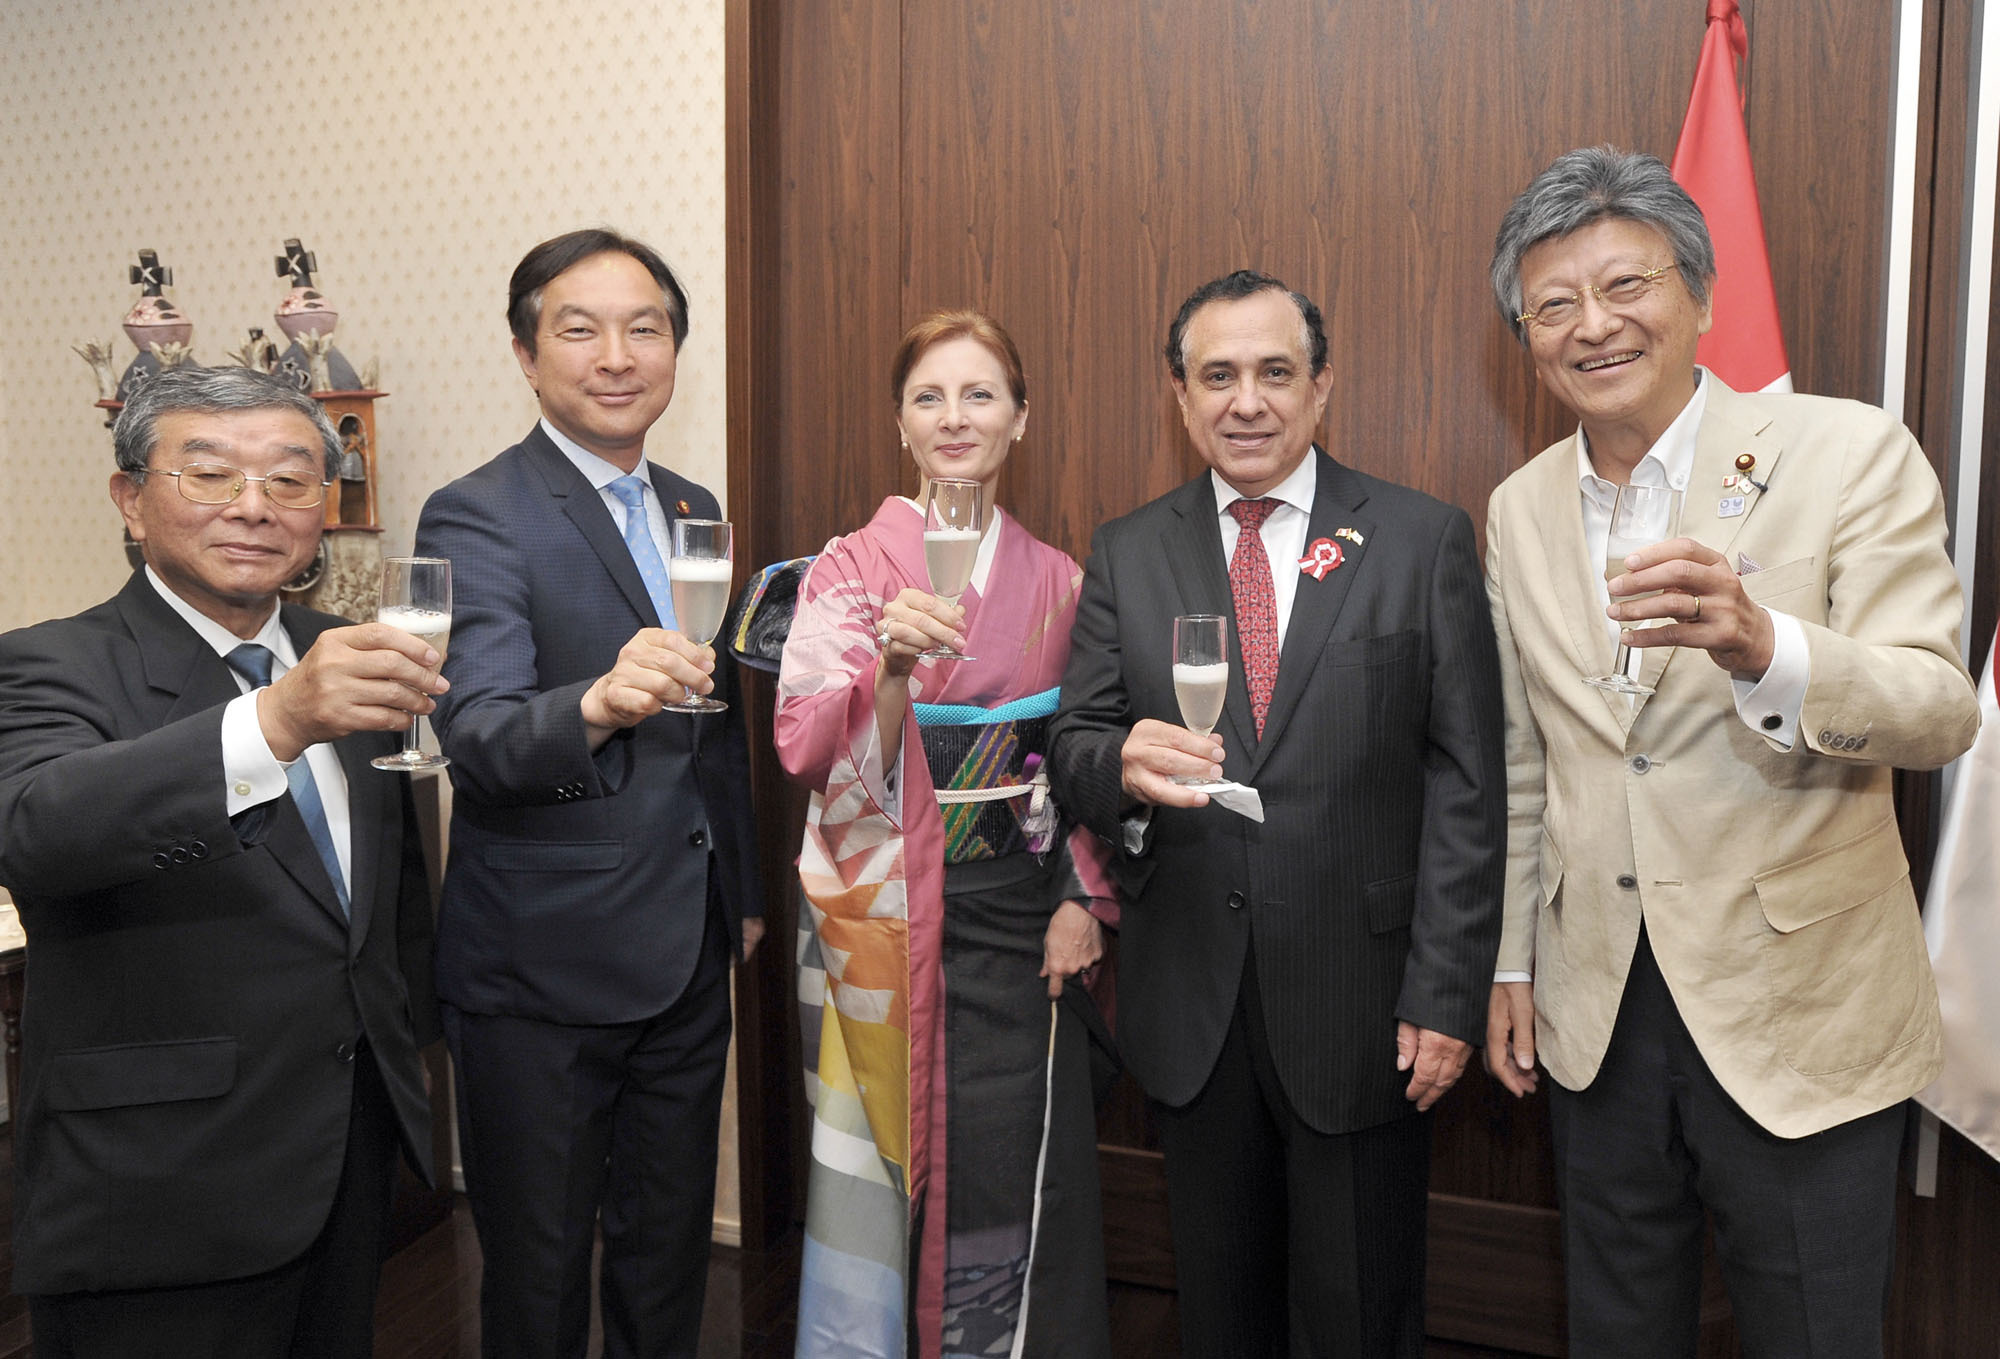 "Peruvian Ambassador Elard Escala (second from right), and his wife, Cristina (center) welcome, from left, Hiroyuki Maekawa, president of the Japan-Peru Association; Keiichi Koshimizu, parliamentary vice minister of internal affairs and communications; and Toru Shiraishi, parliamentary vice minister of the environment and Cabinet office, during a reception celebrating the 195th anniversary of Peruvian Independence Day and the food festival ""Pisco of Honor & Oishii Peru'' at the embassy in Tokyo on July 28. 